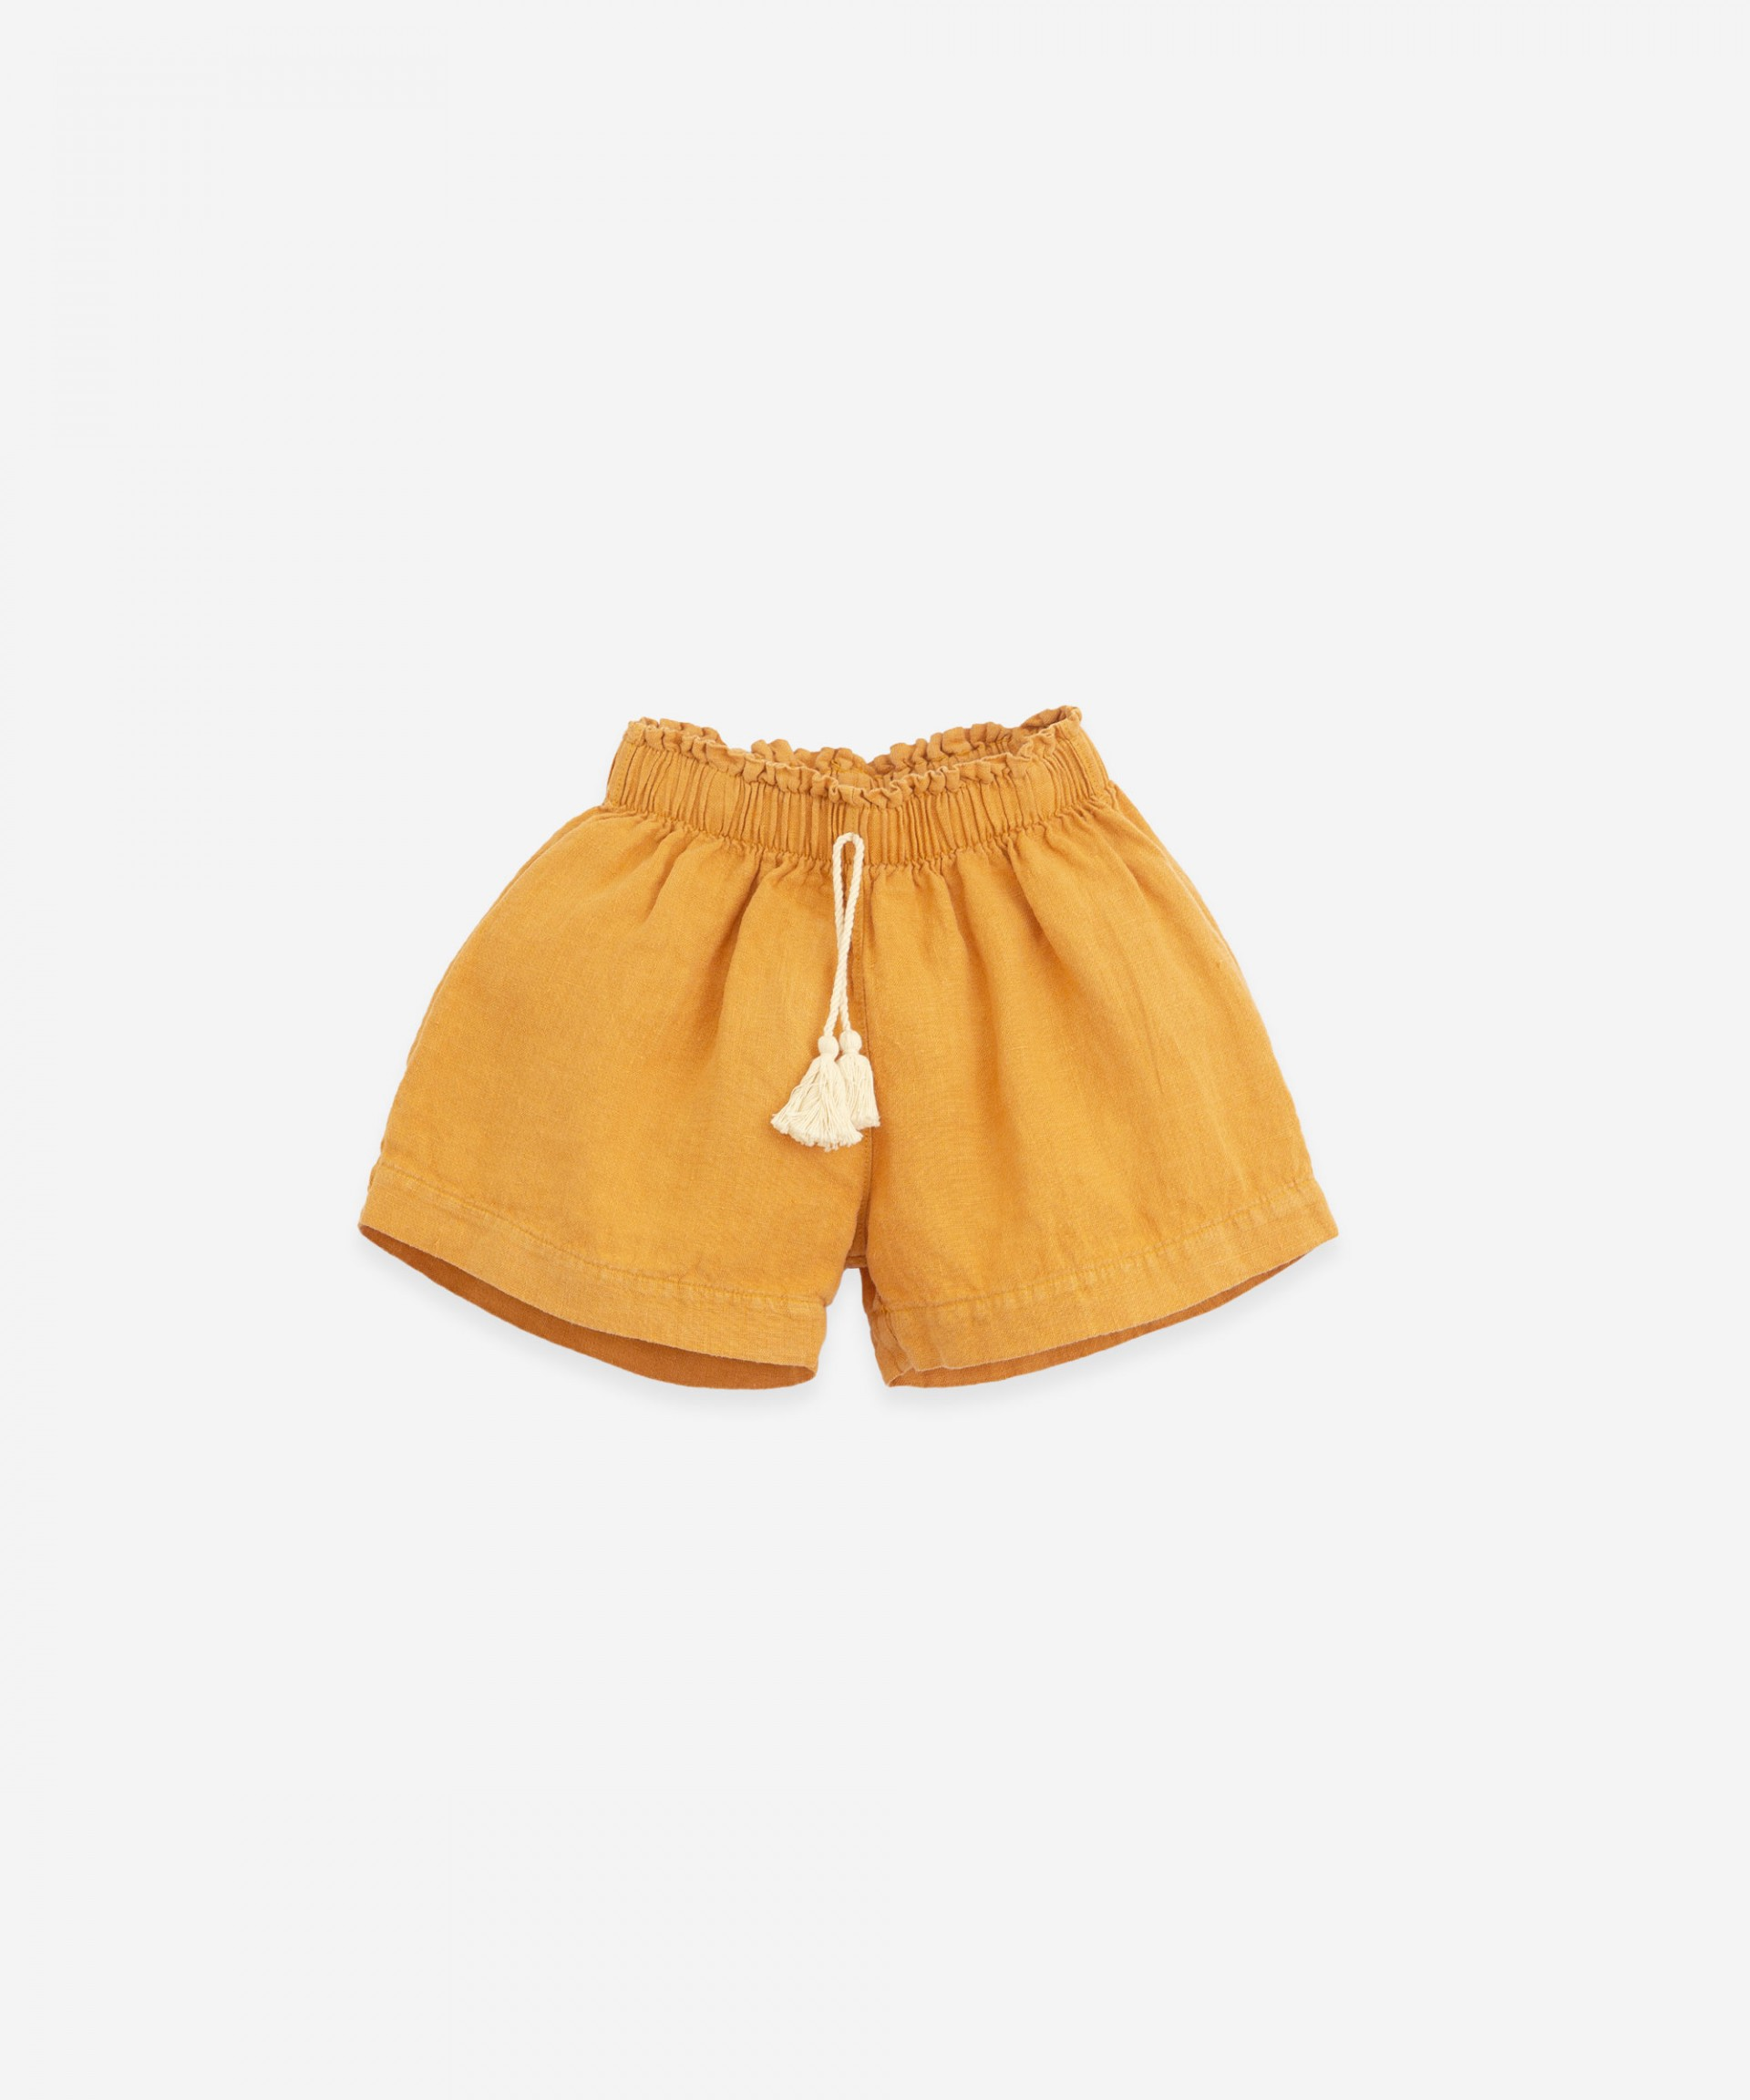 Woven shorts with cord | Botany